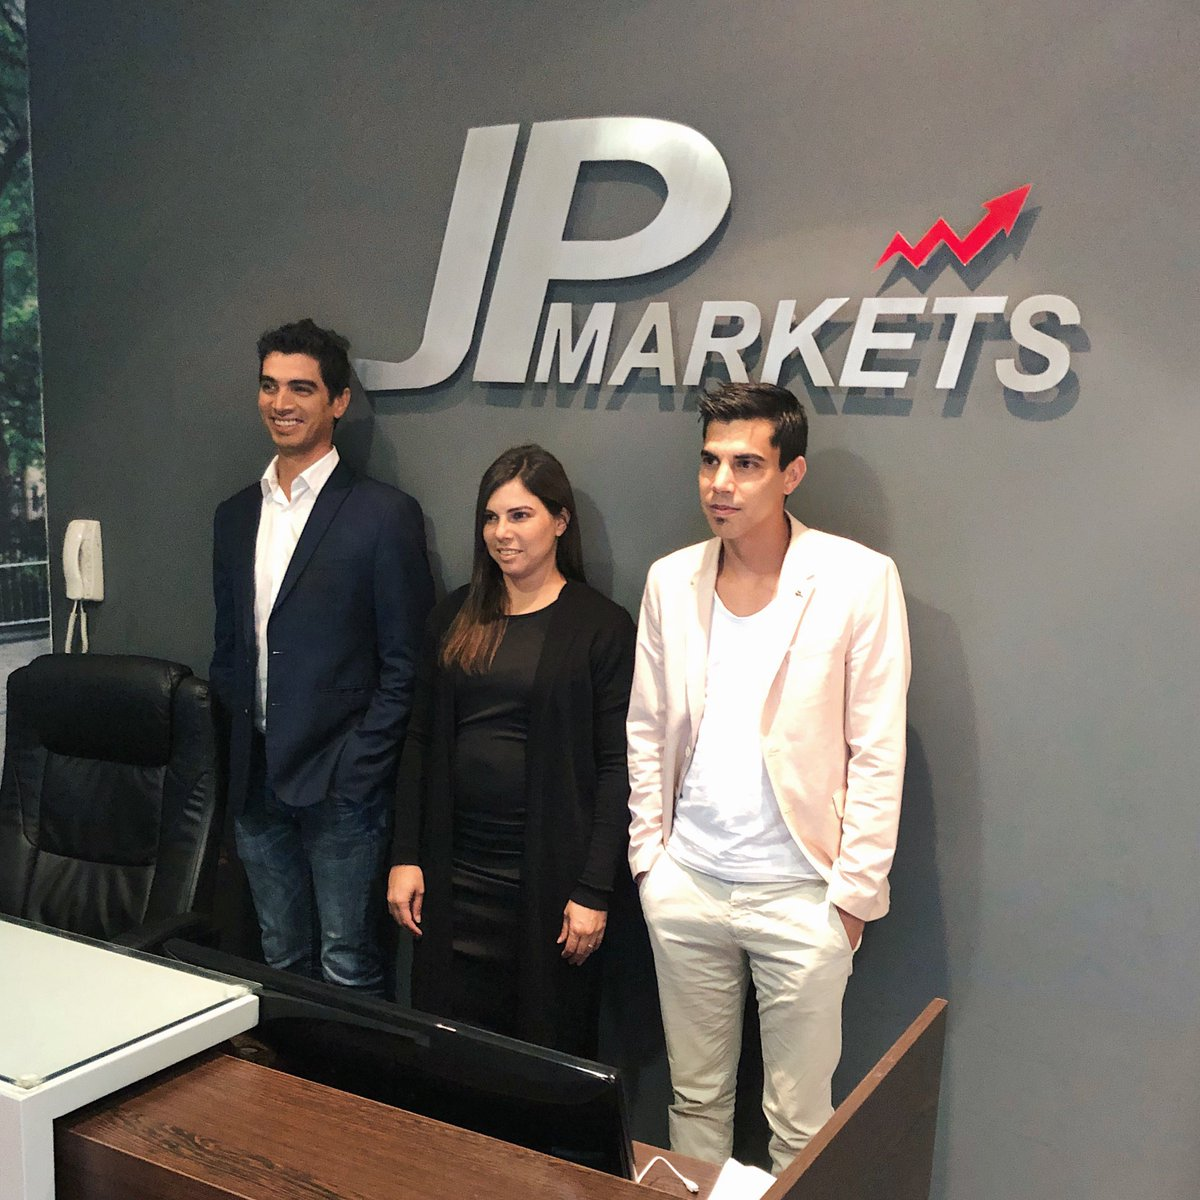 Jp markets group